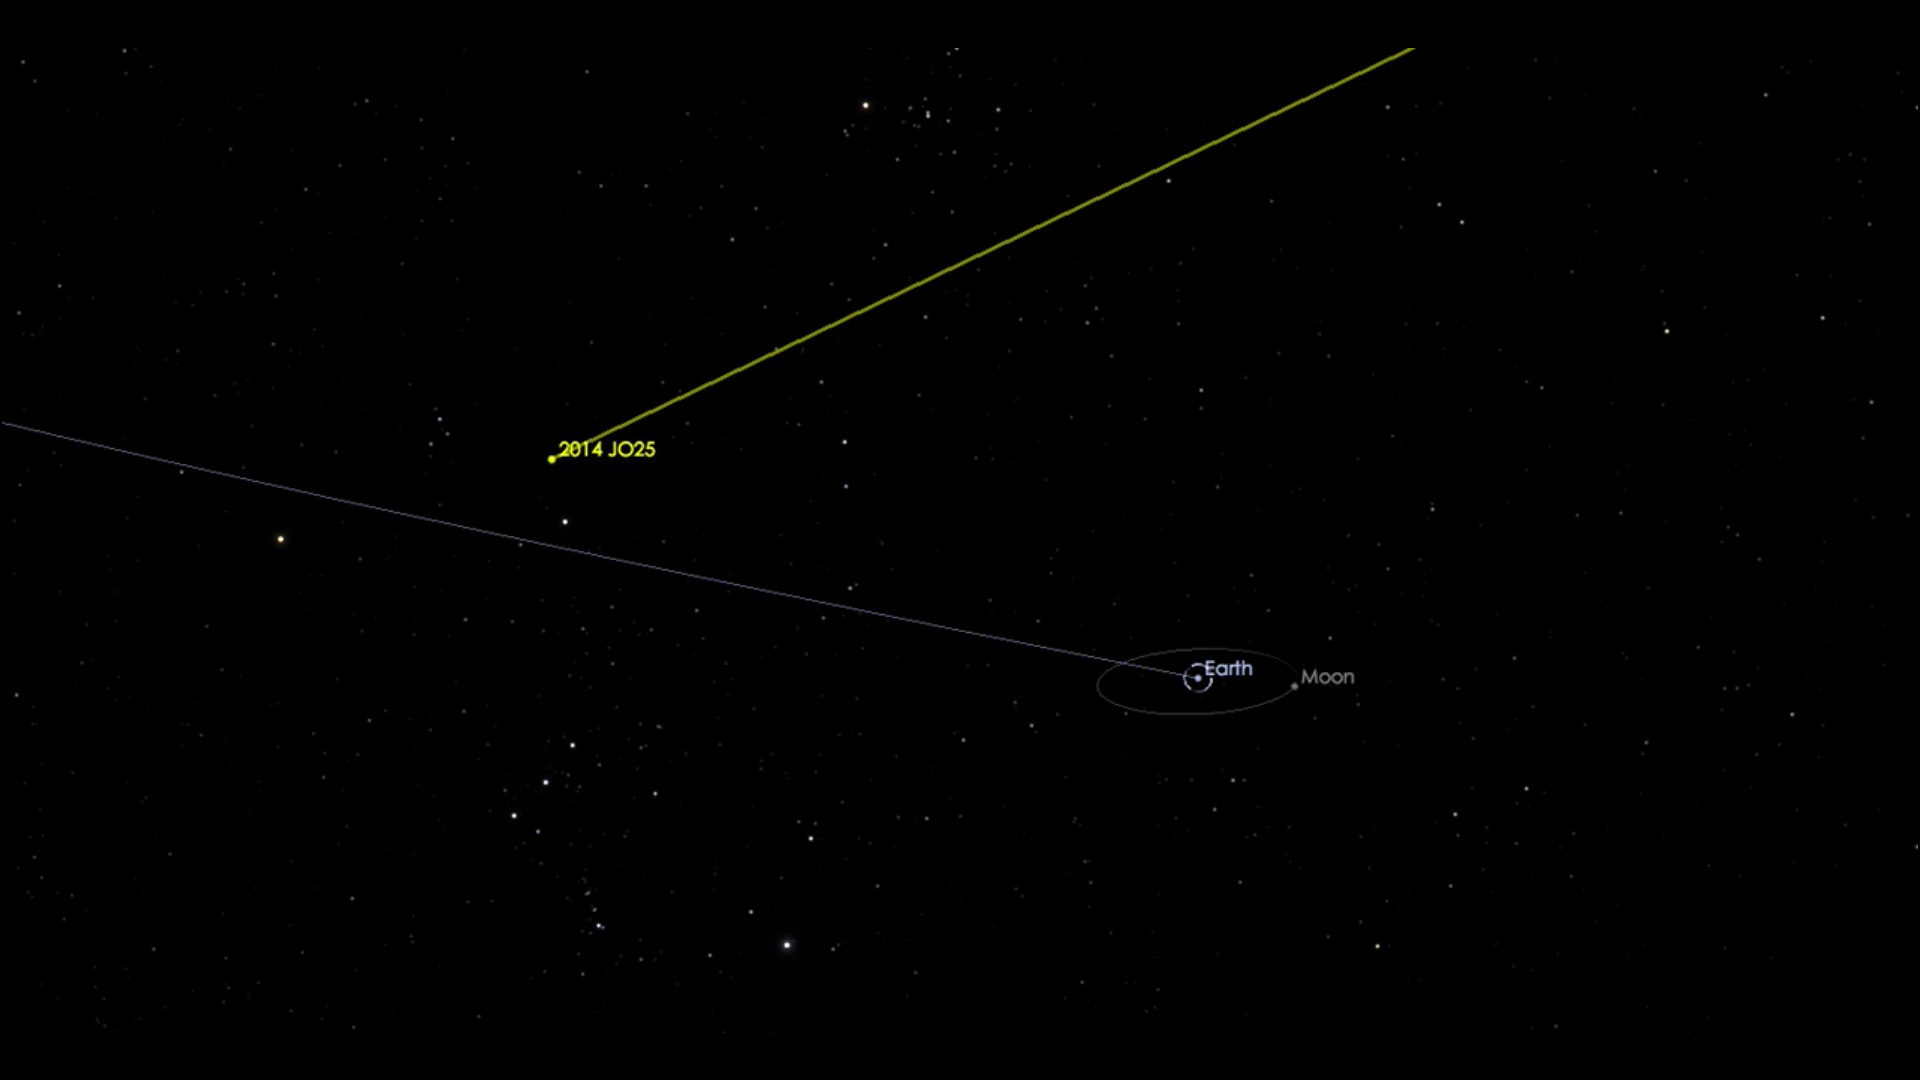 Asteroid 2014 JO25 will pass close to Earth April 19.